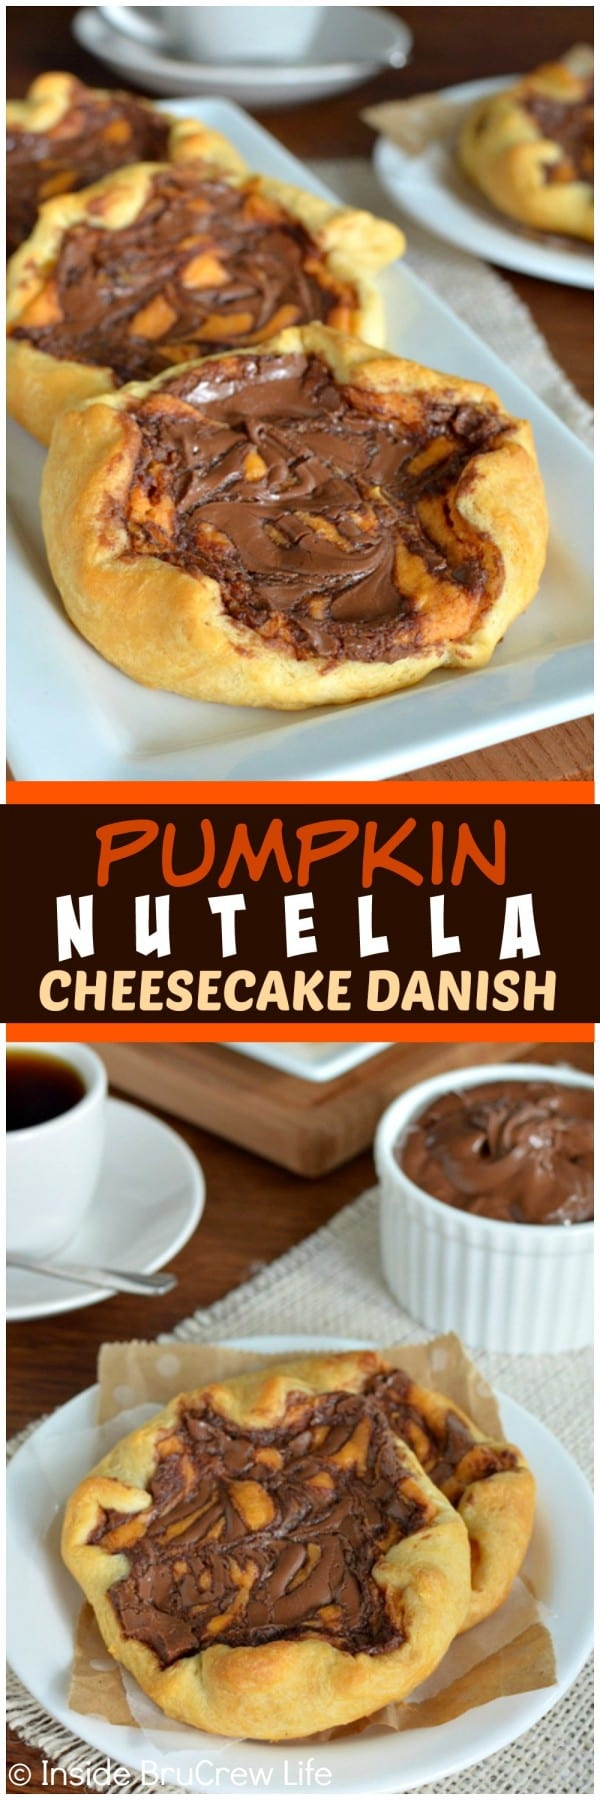 Pumpkin Nutella Cheesecake Danish - swirls of chocolate and cheesecake create a fun fall breakfast. Great recipe for enjoying with coffee!